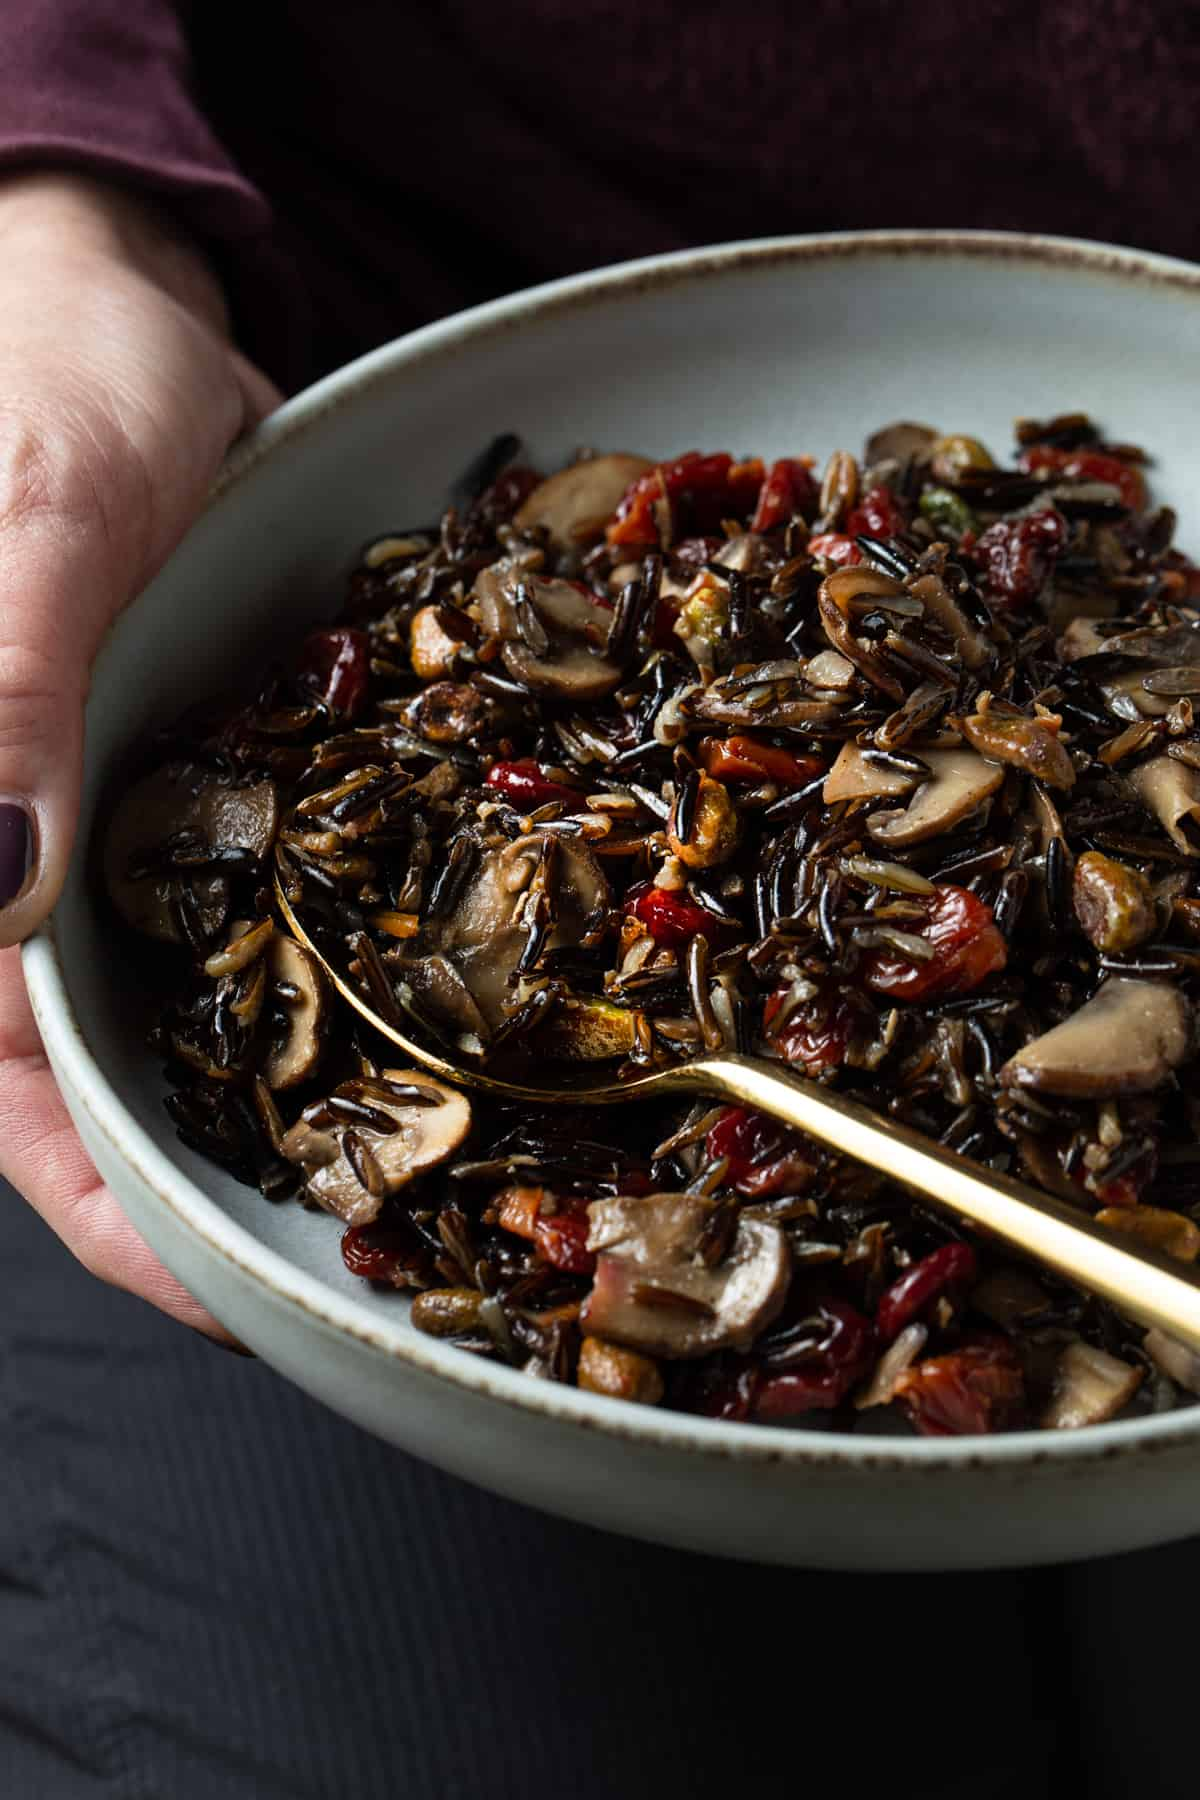 Hands holding a gray bowl filled with cooked wild rice.